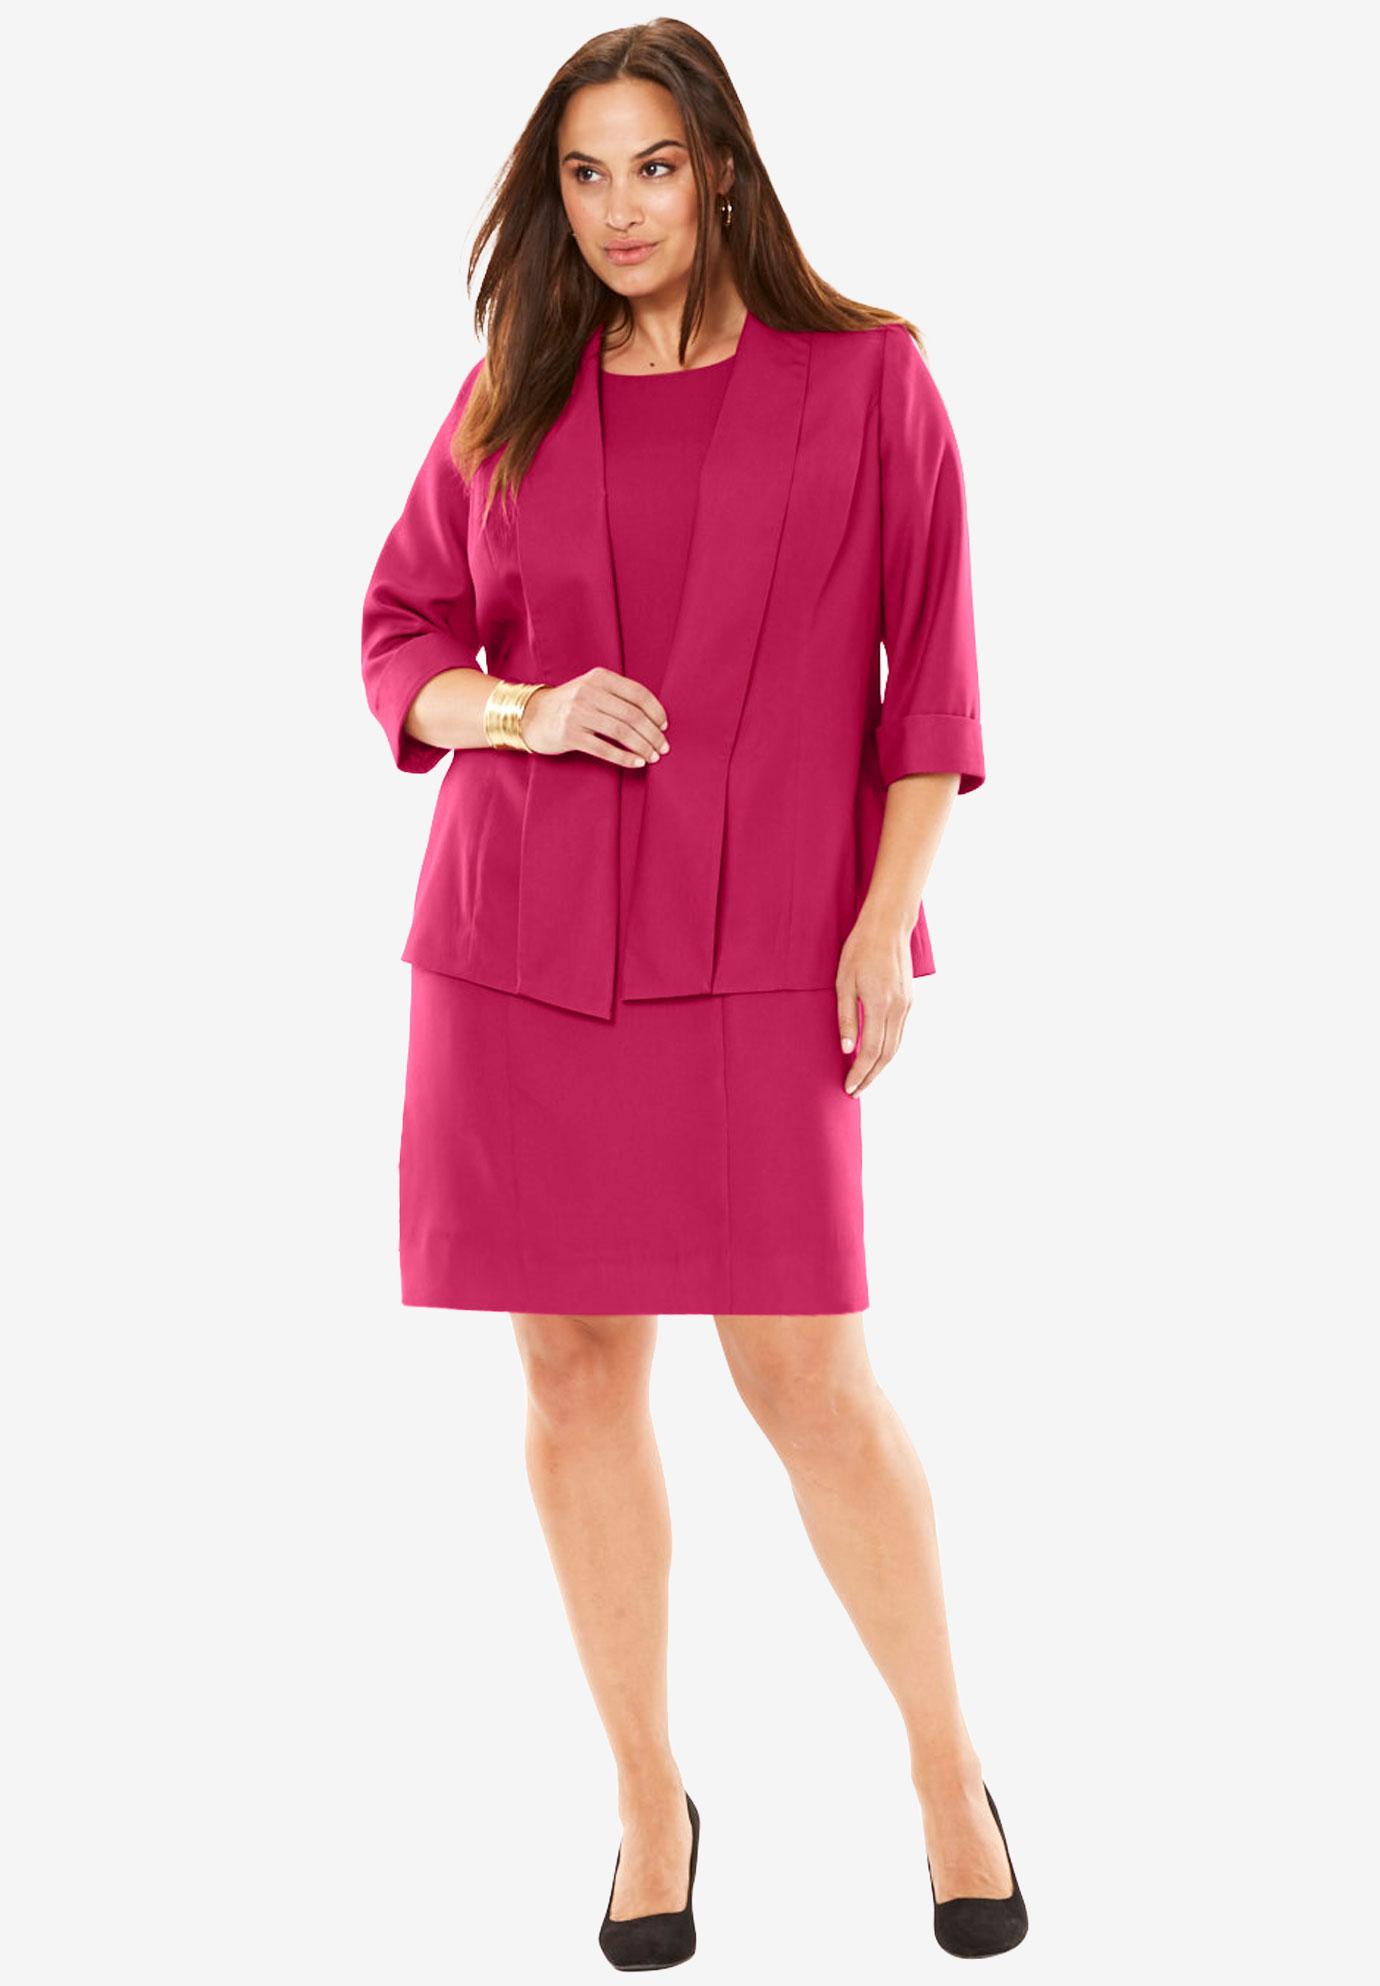 Shawl Collar Jacket Dress Plus Size Special Occasion Full Beauty